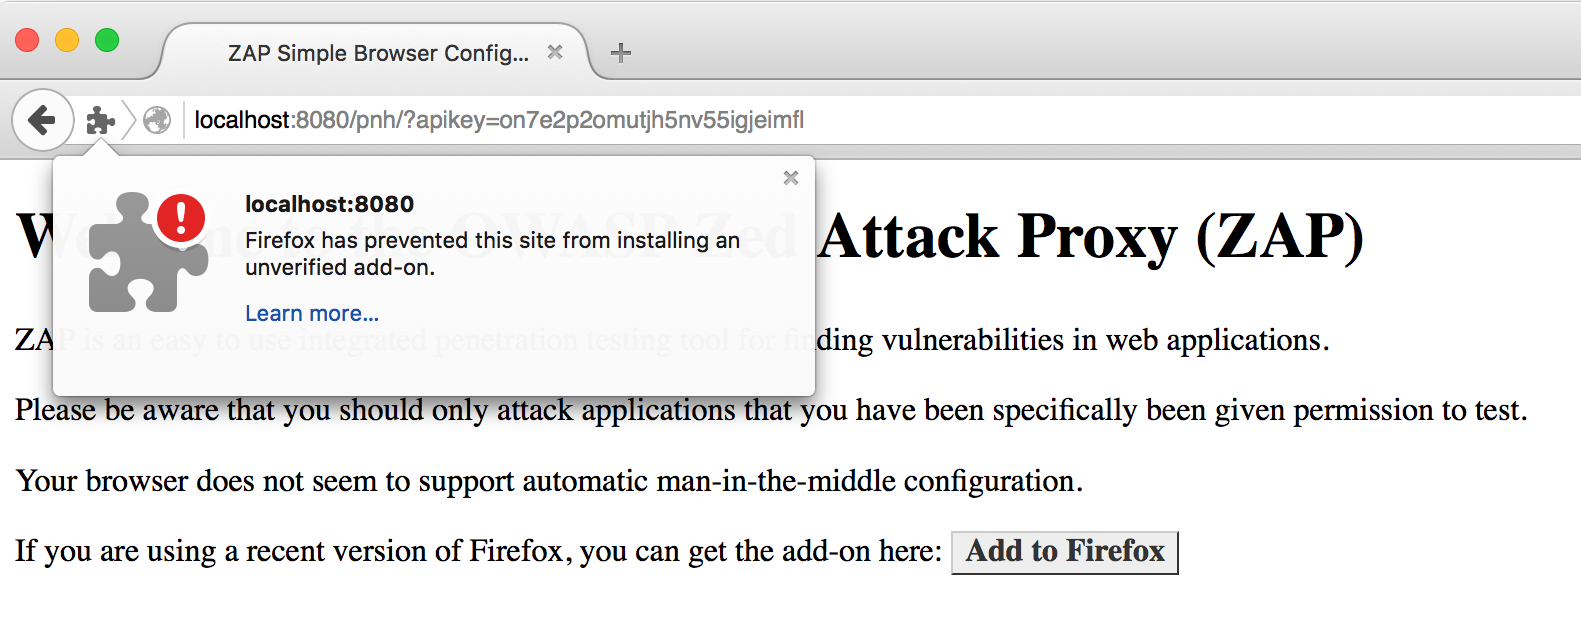 Firefox has prevented this site from installing an unverified add-on